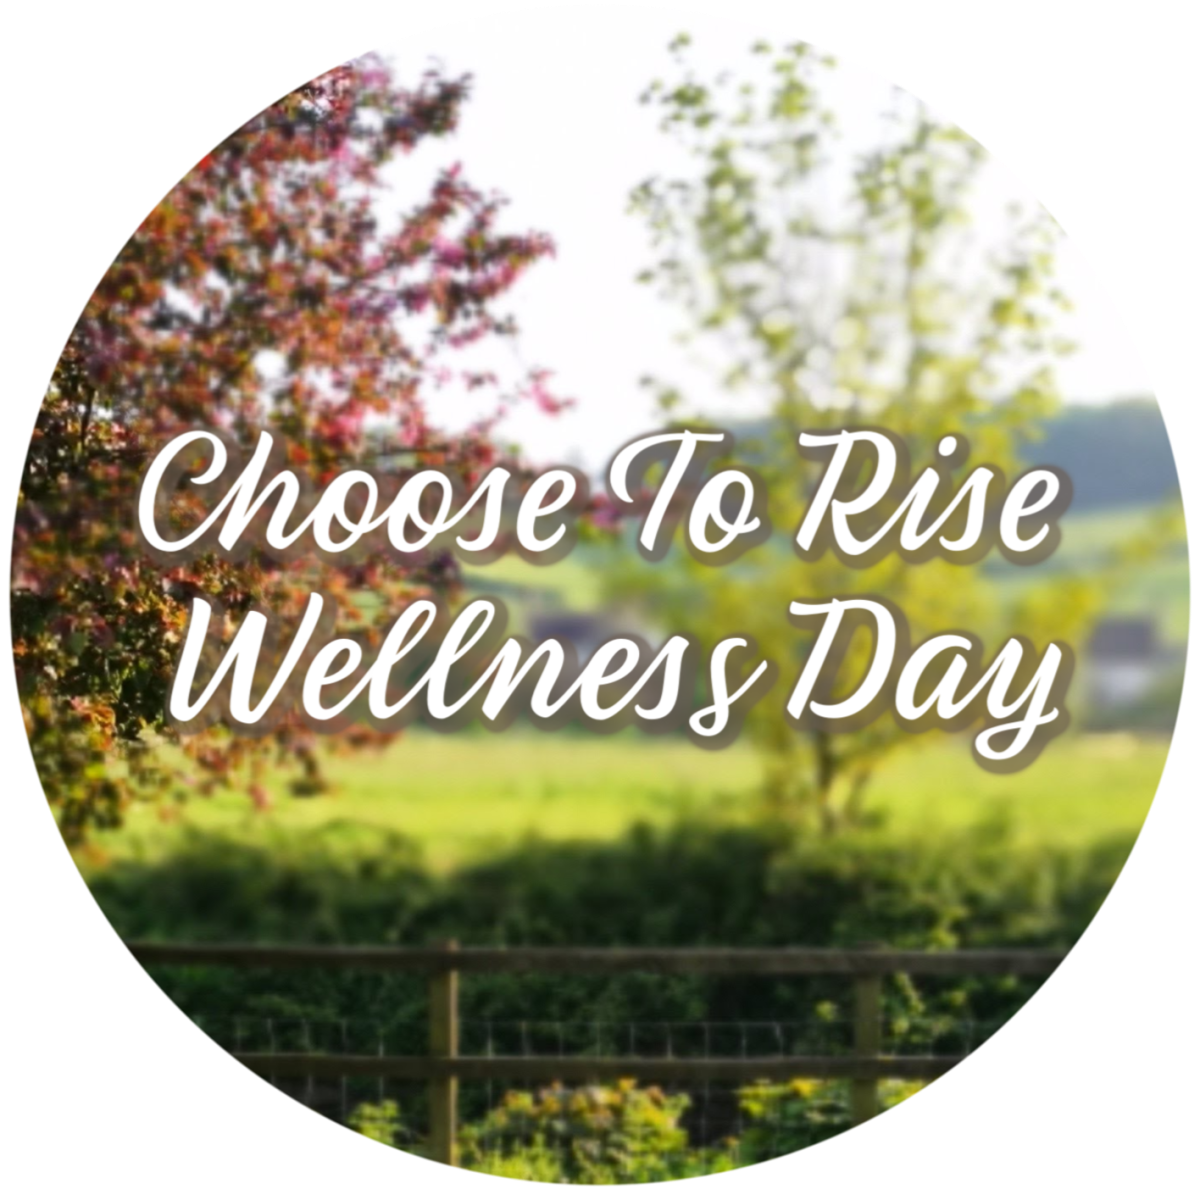 Choose To Rise Wellness Day